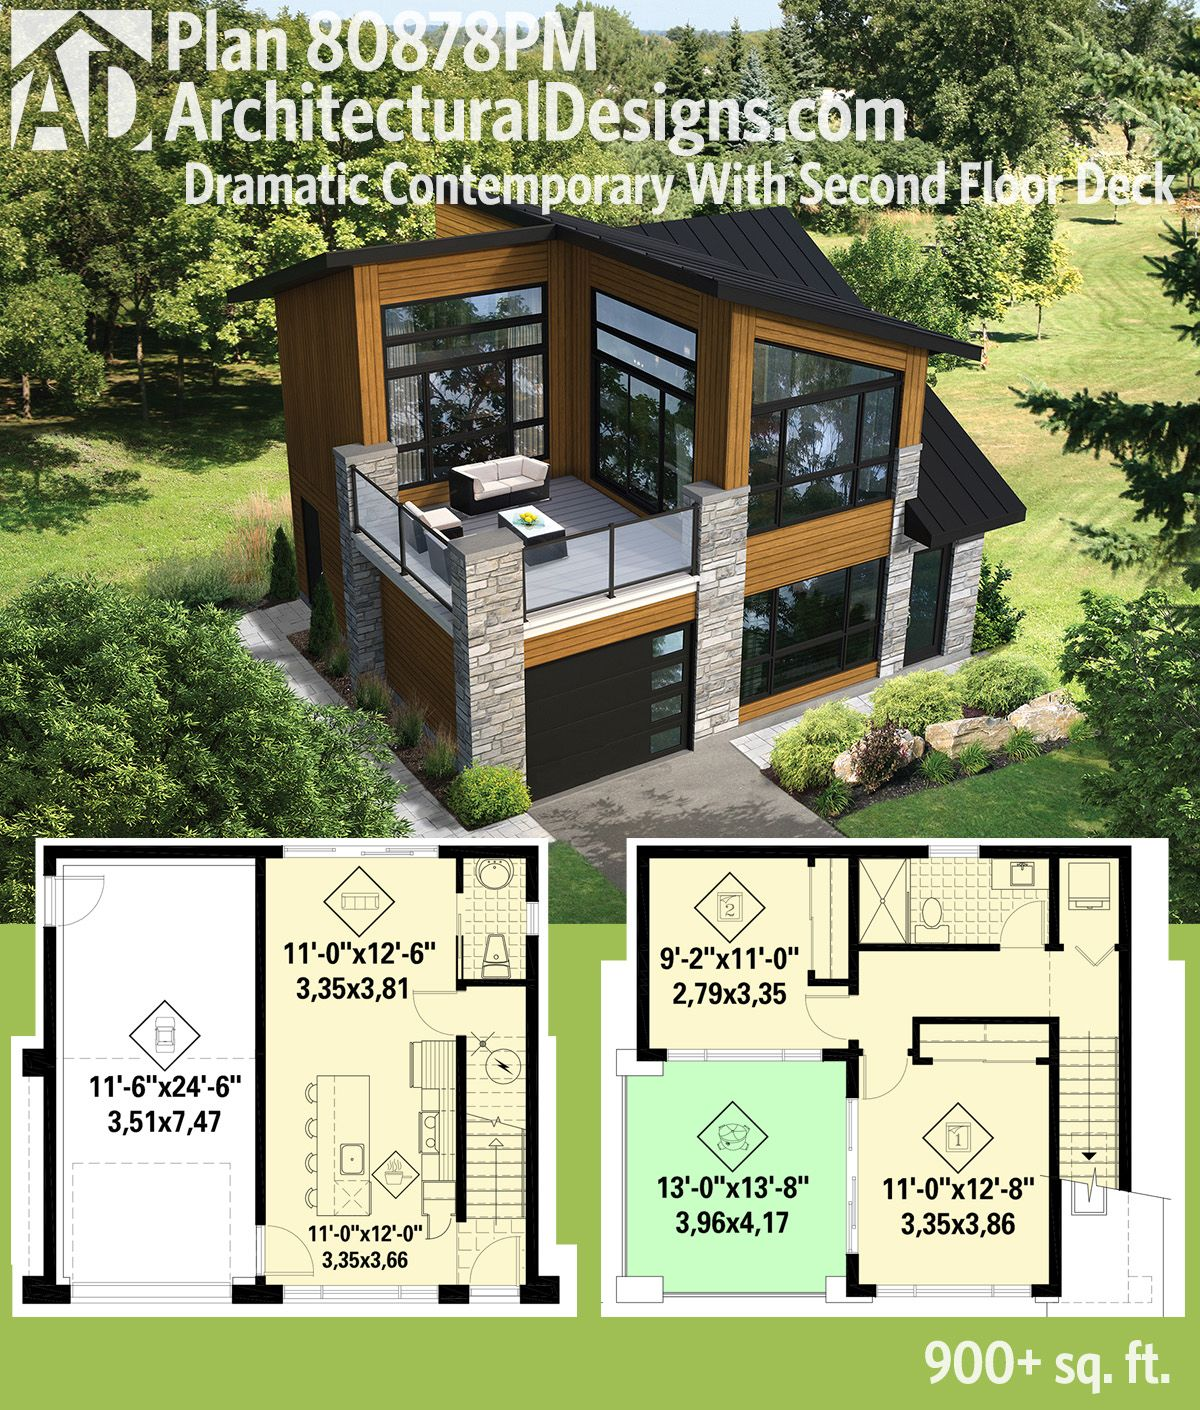 Plan 80878pm dramatic contemporary with second floor deck for Modern cabin floor plans